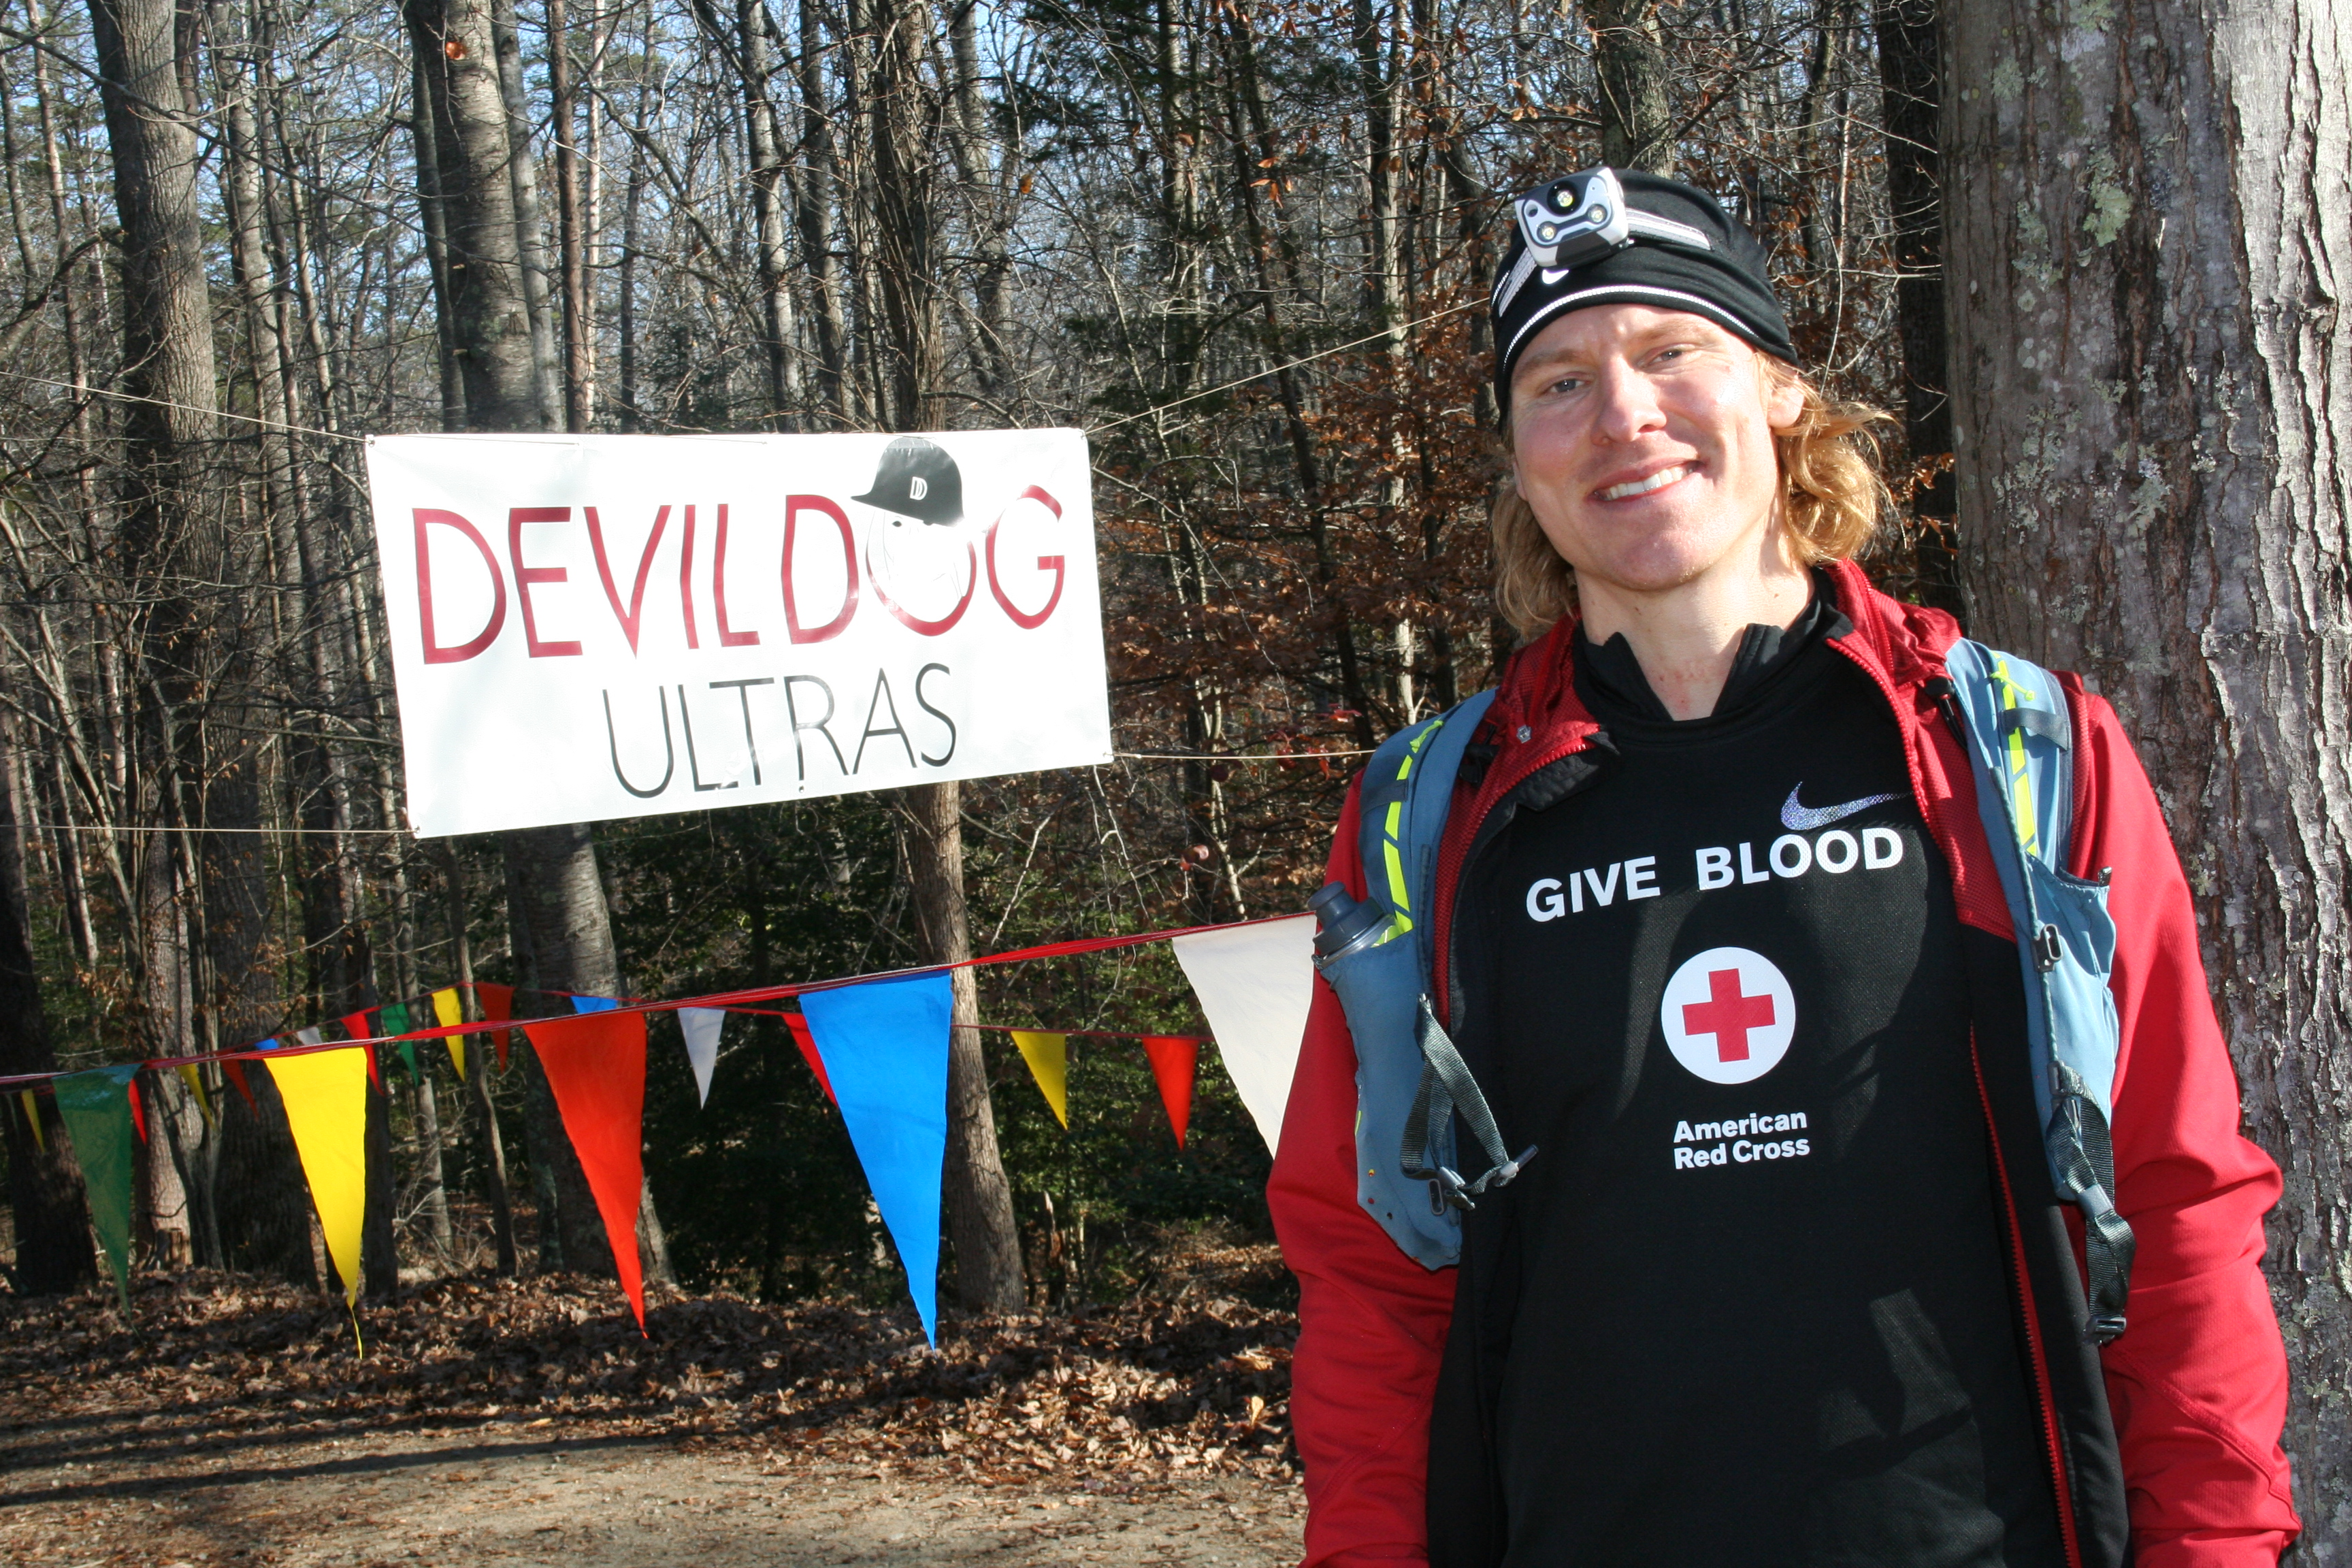 Ultra runner's journey fueled by 36 blood donors | runspirited